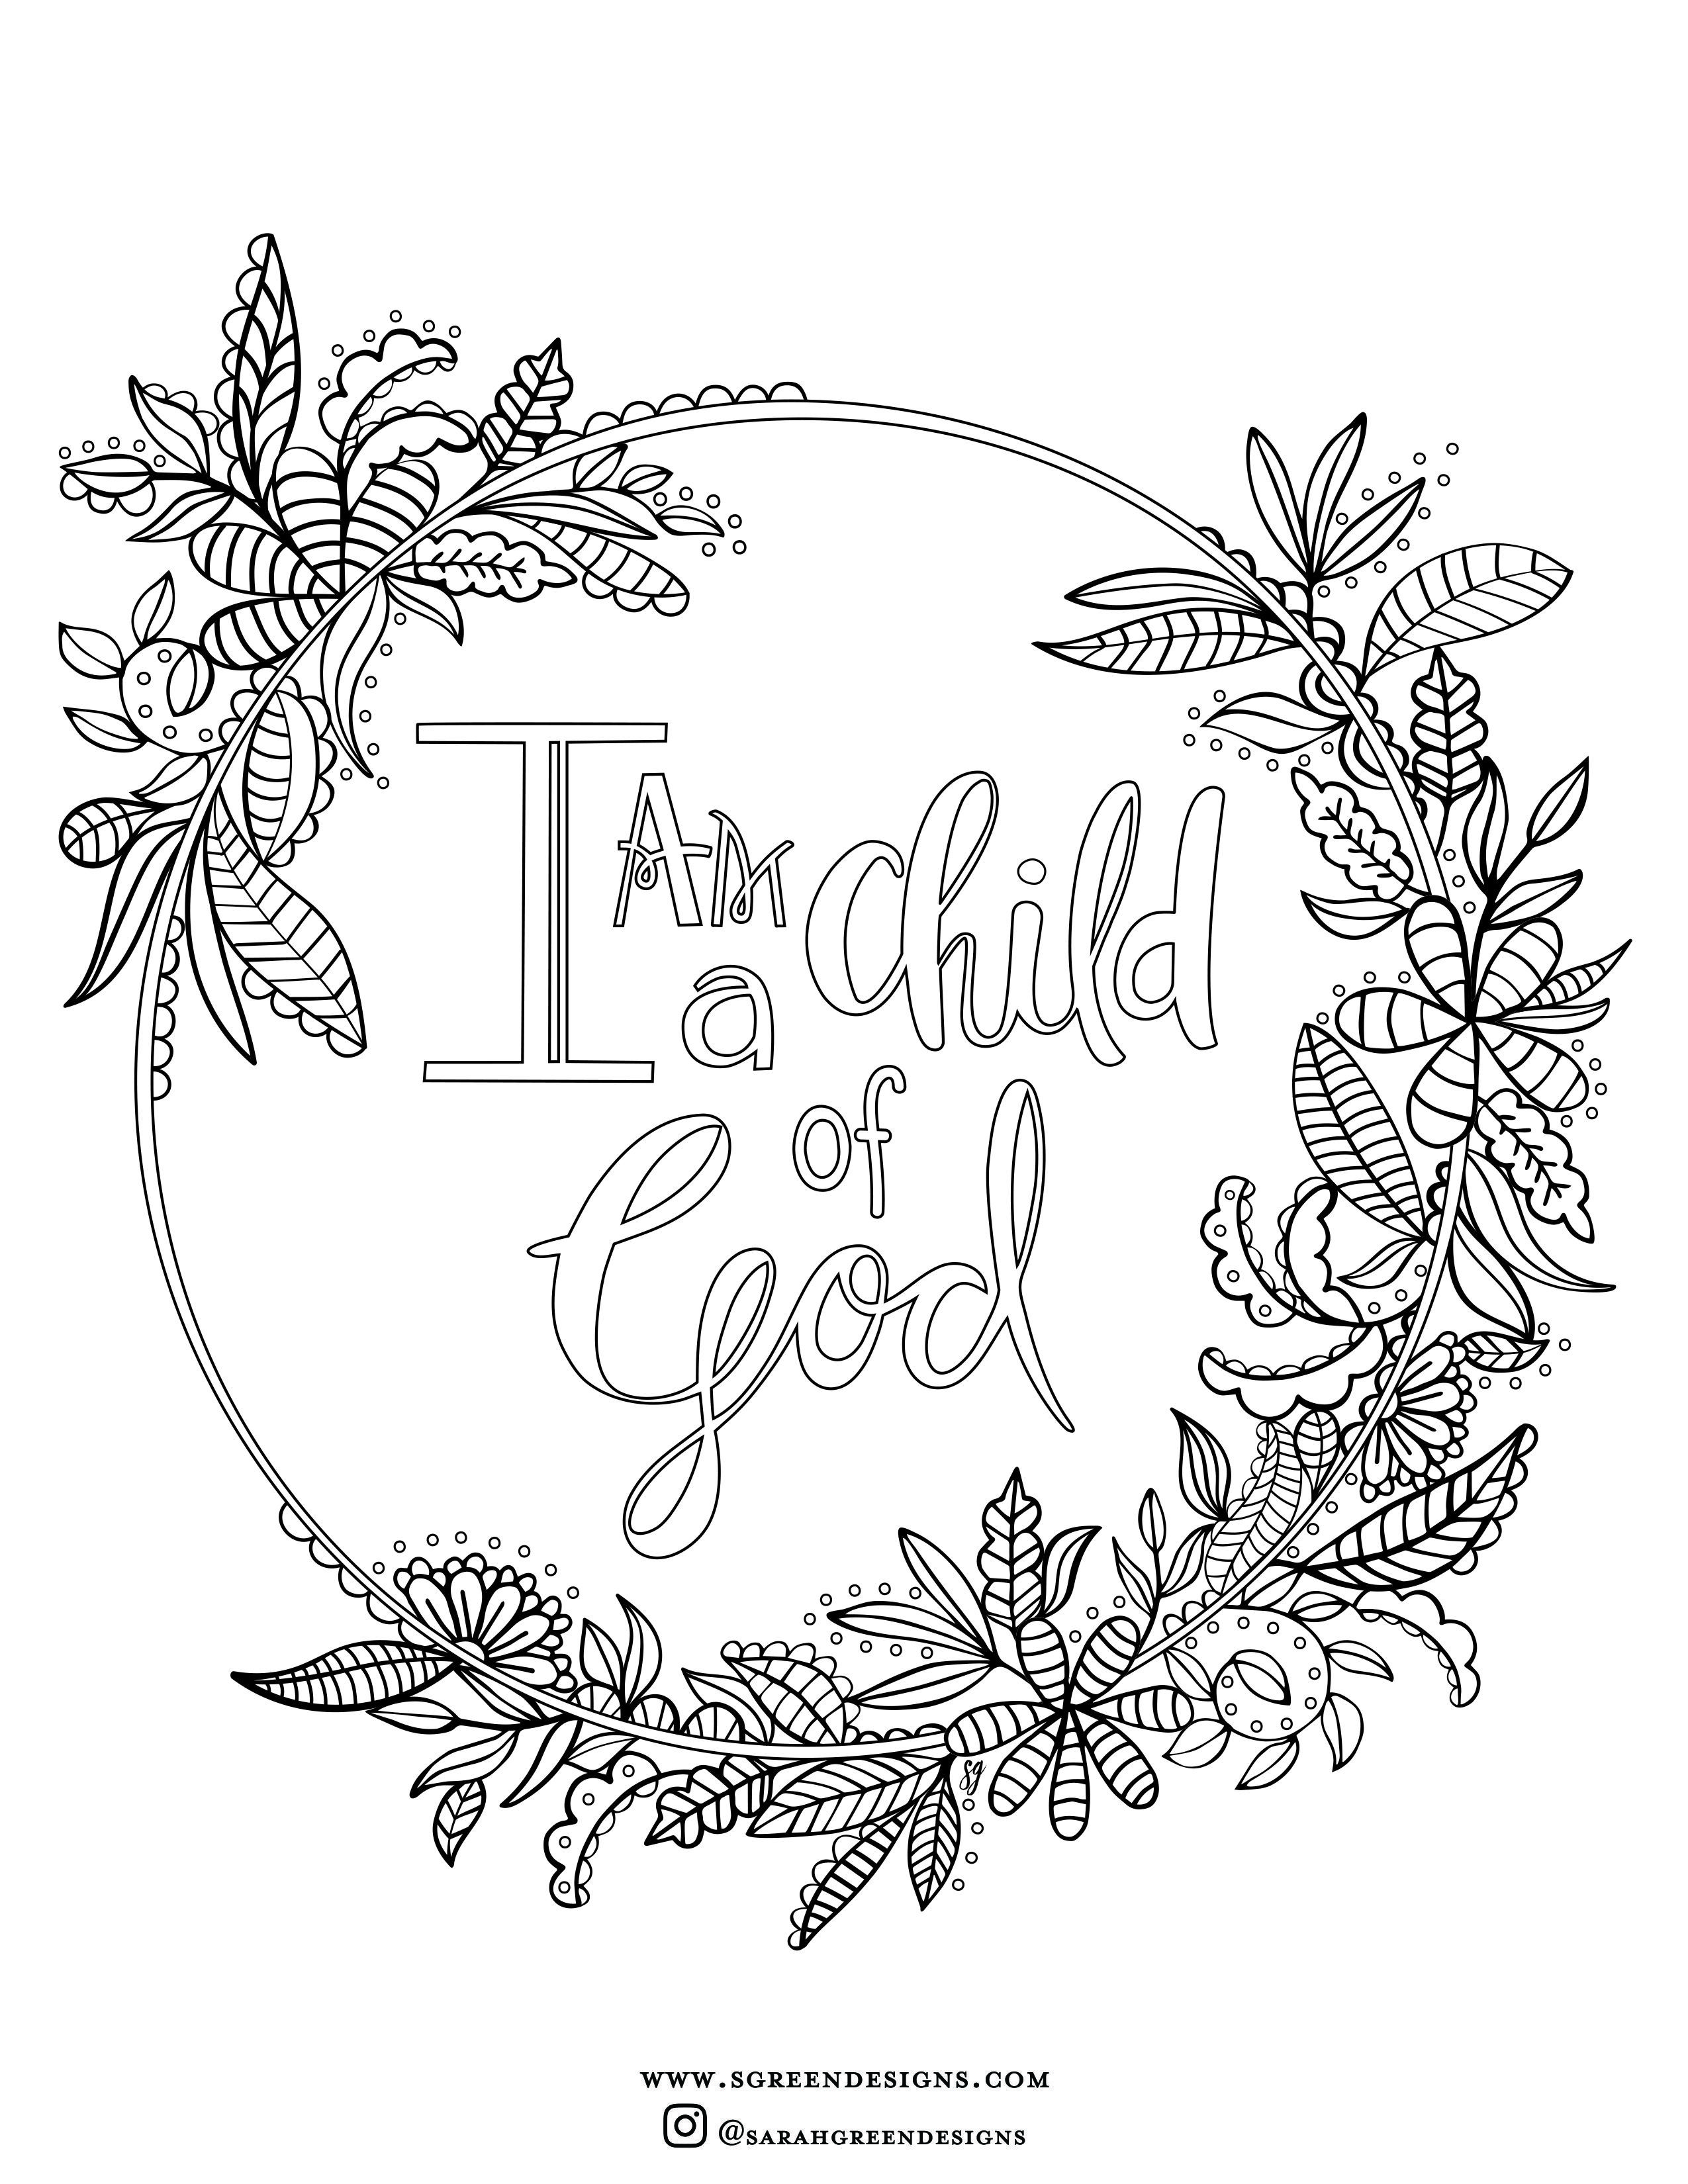 Best Photo Lds Coloring Pages Popular The Beautiful Factor Concerning Color Is It Is As Basic Or May In 2021 Bible Coloring Free Coloring Pages Christian Coloring Book